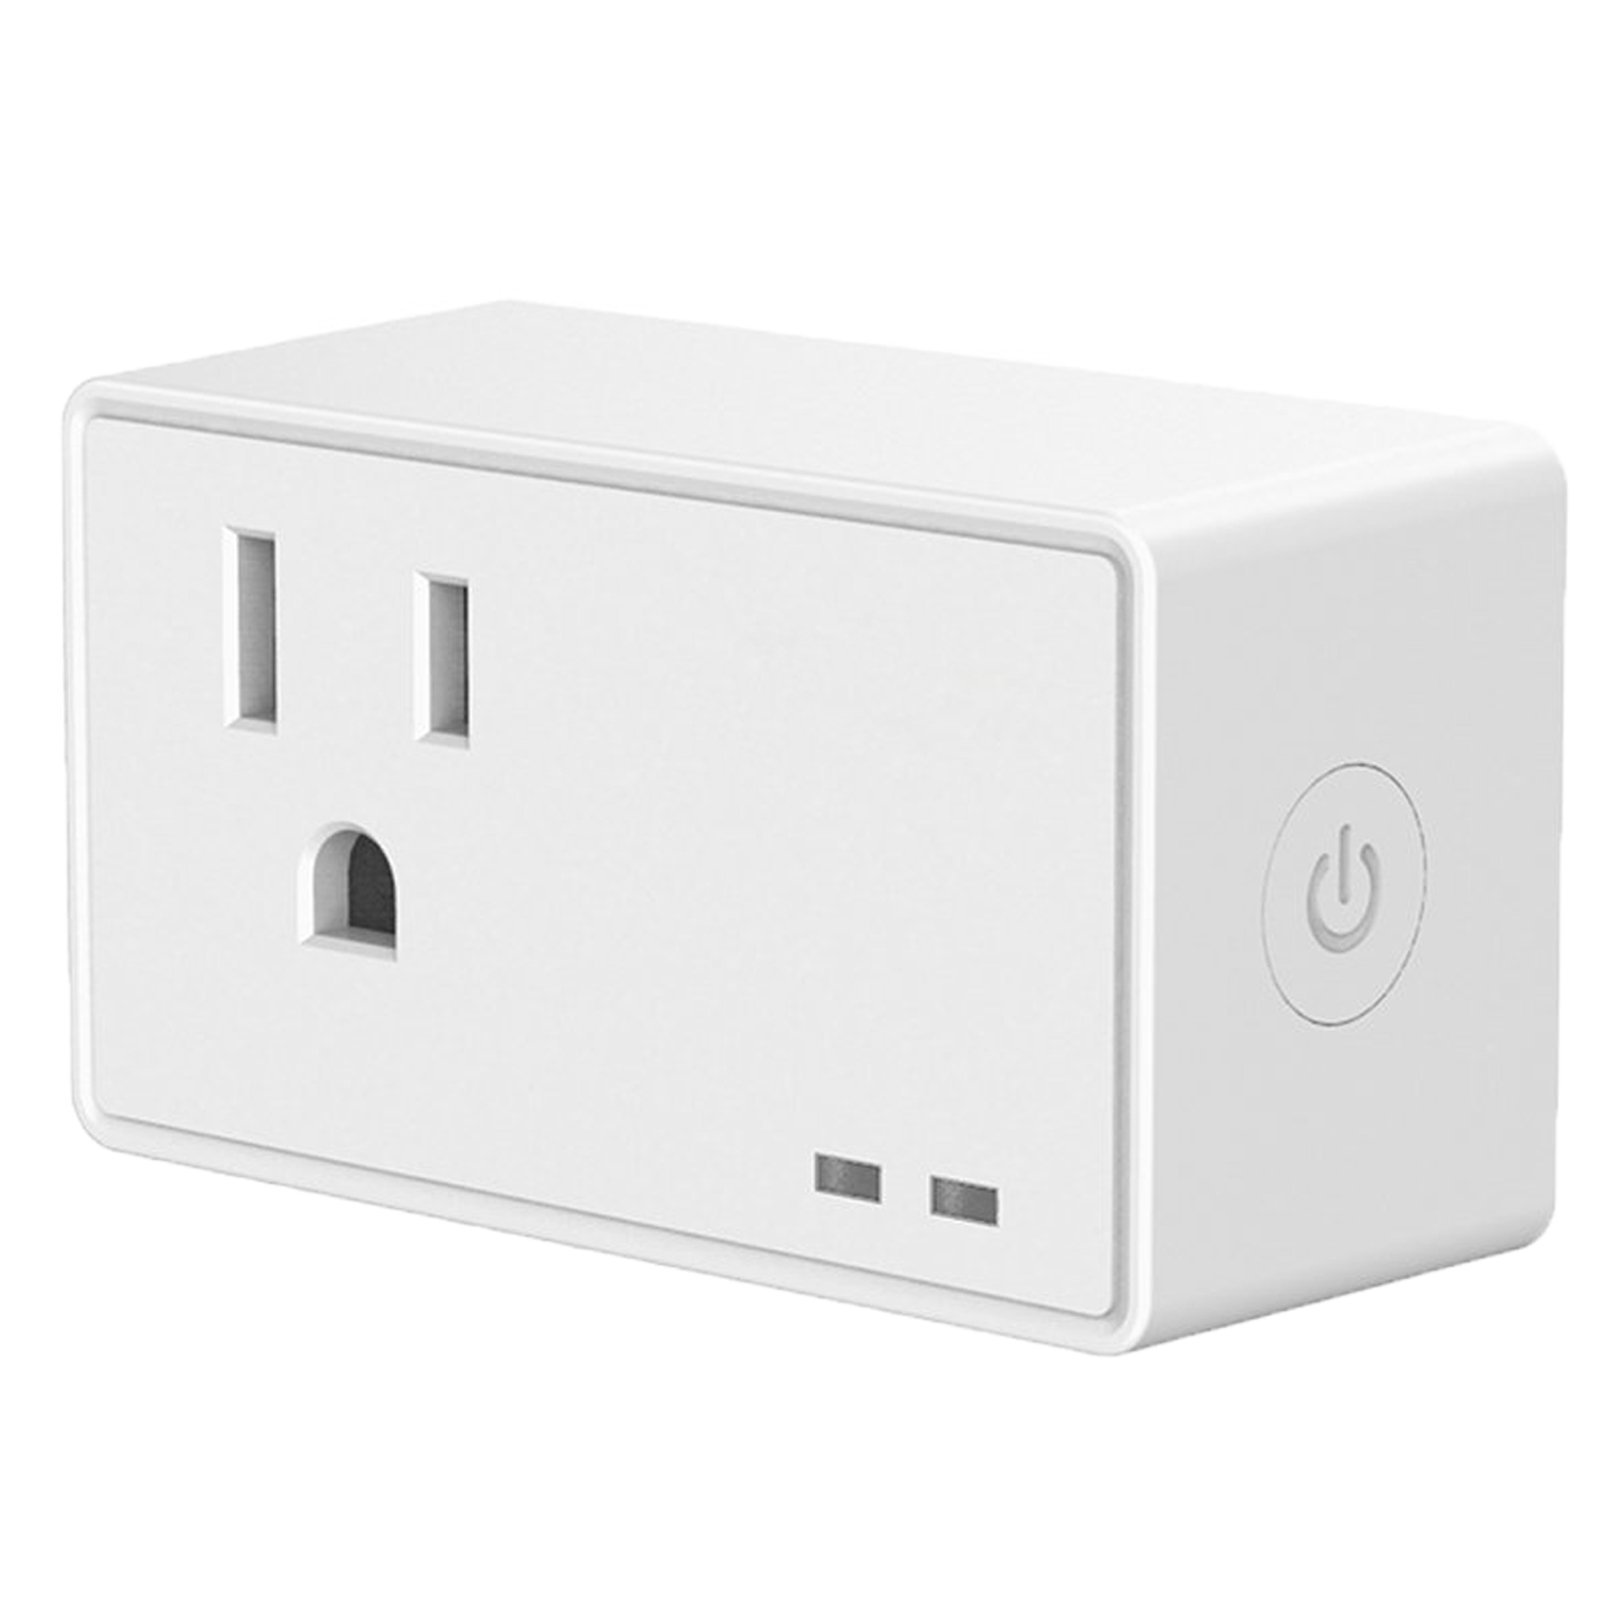 AVACOM WiFi Smart Plug, Compatible with Amazon Alexa Echo/Dot | Google Home | Works with Nest and IFTTT, Remote Voice and App Control from Anywhere, Wifi Remote Outlet, No Hub Required by Avacom (Image #1)